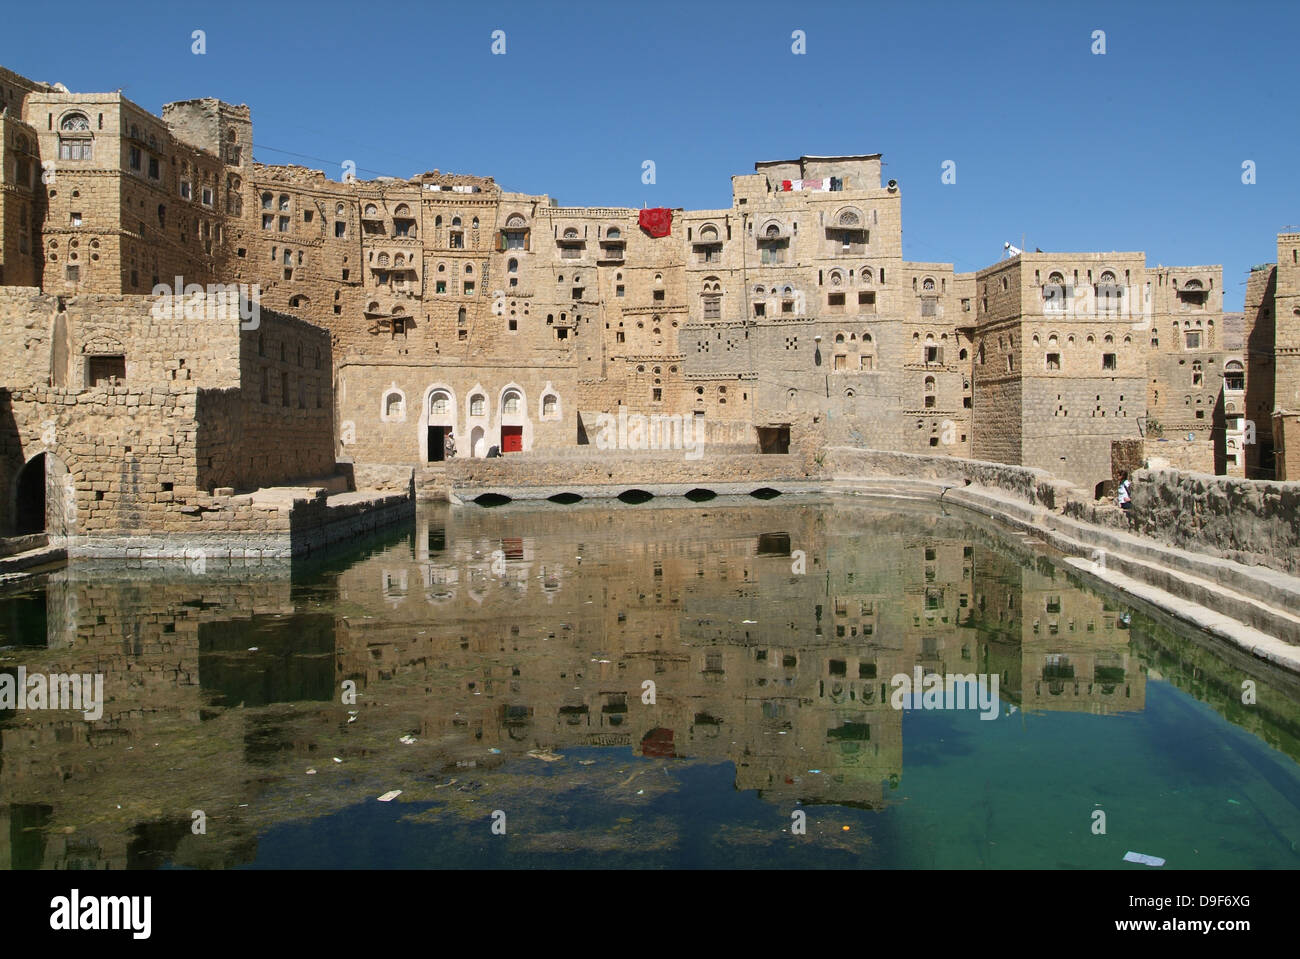 The town of Hababah on Yemen - Stock Image